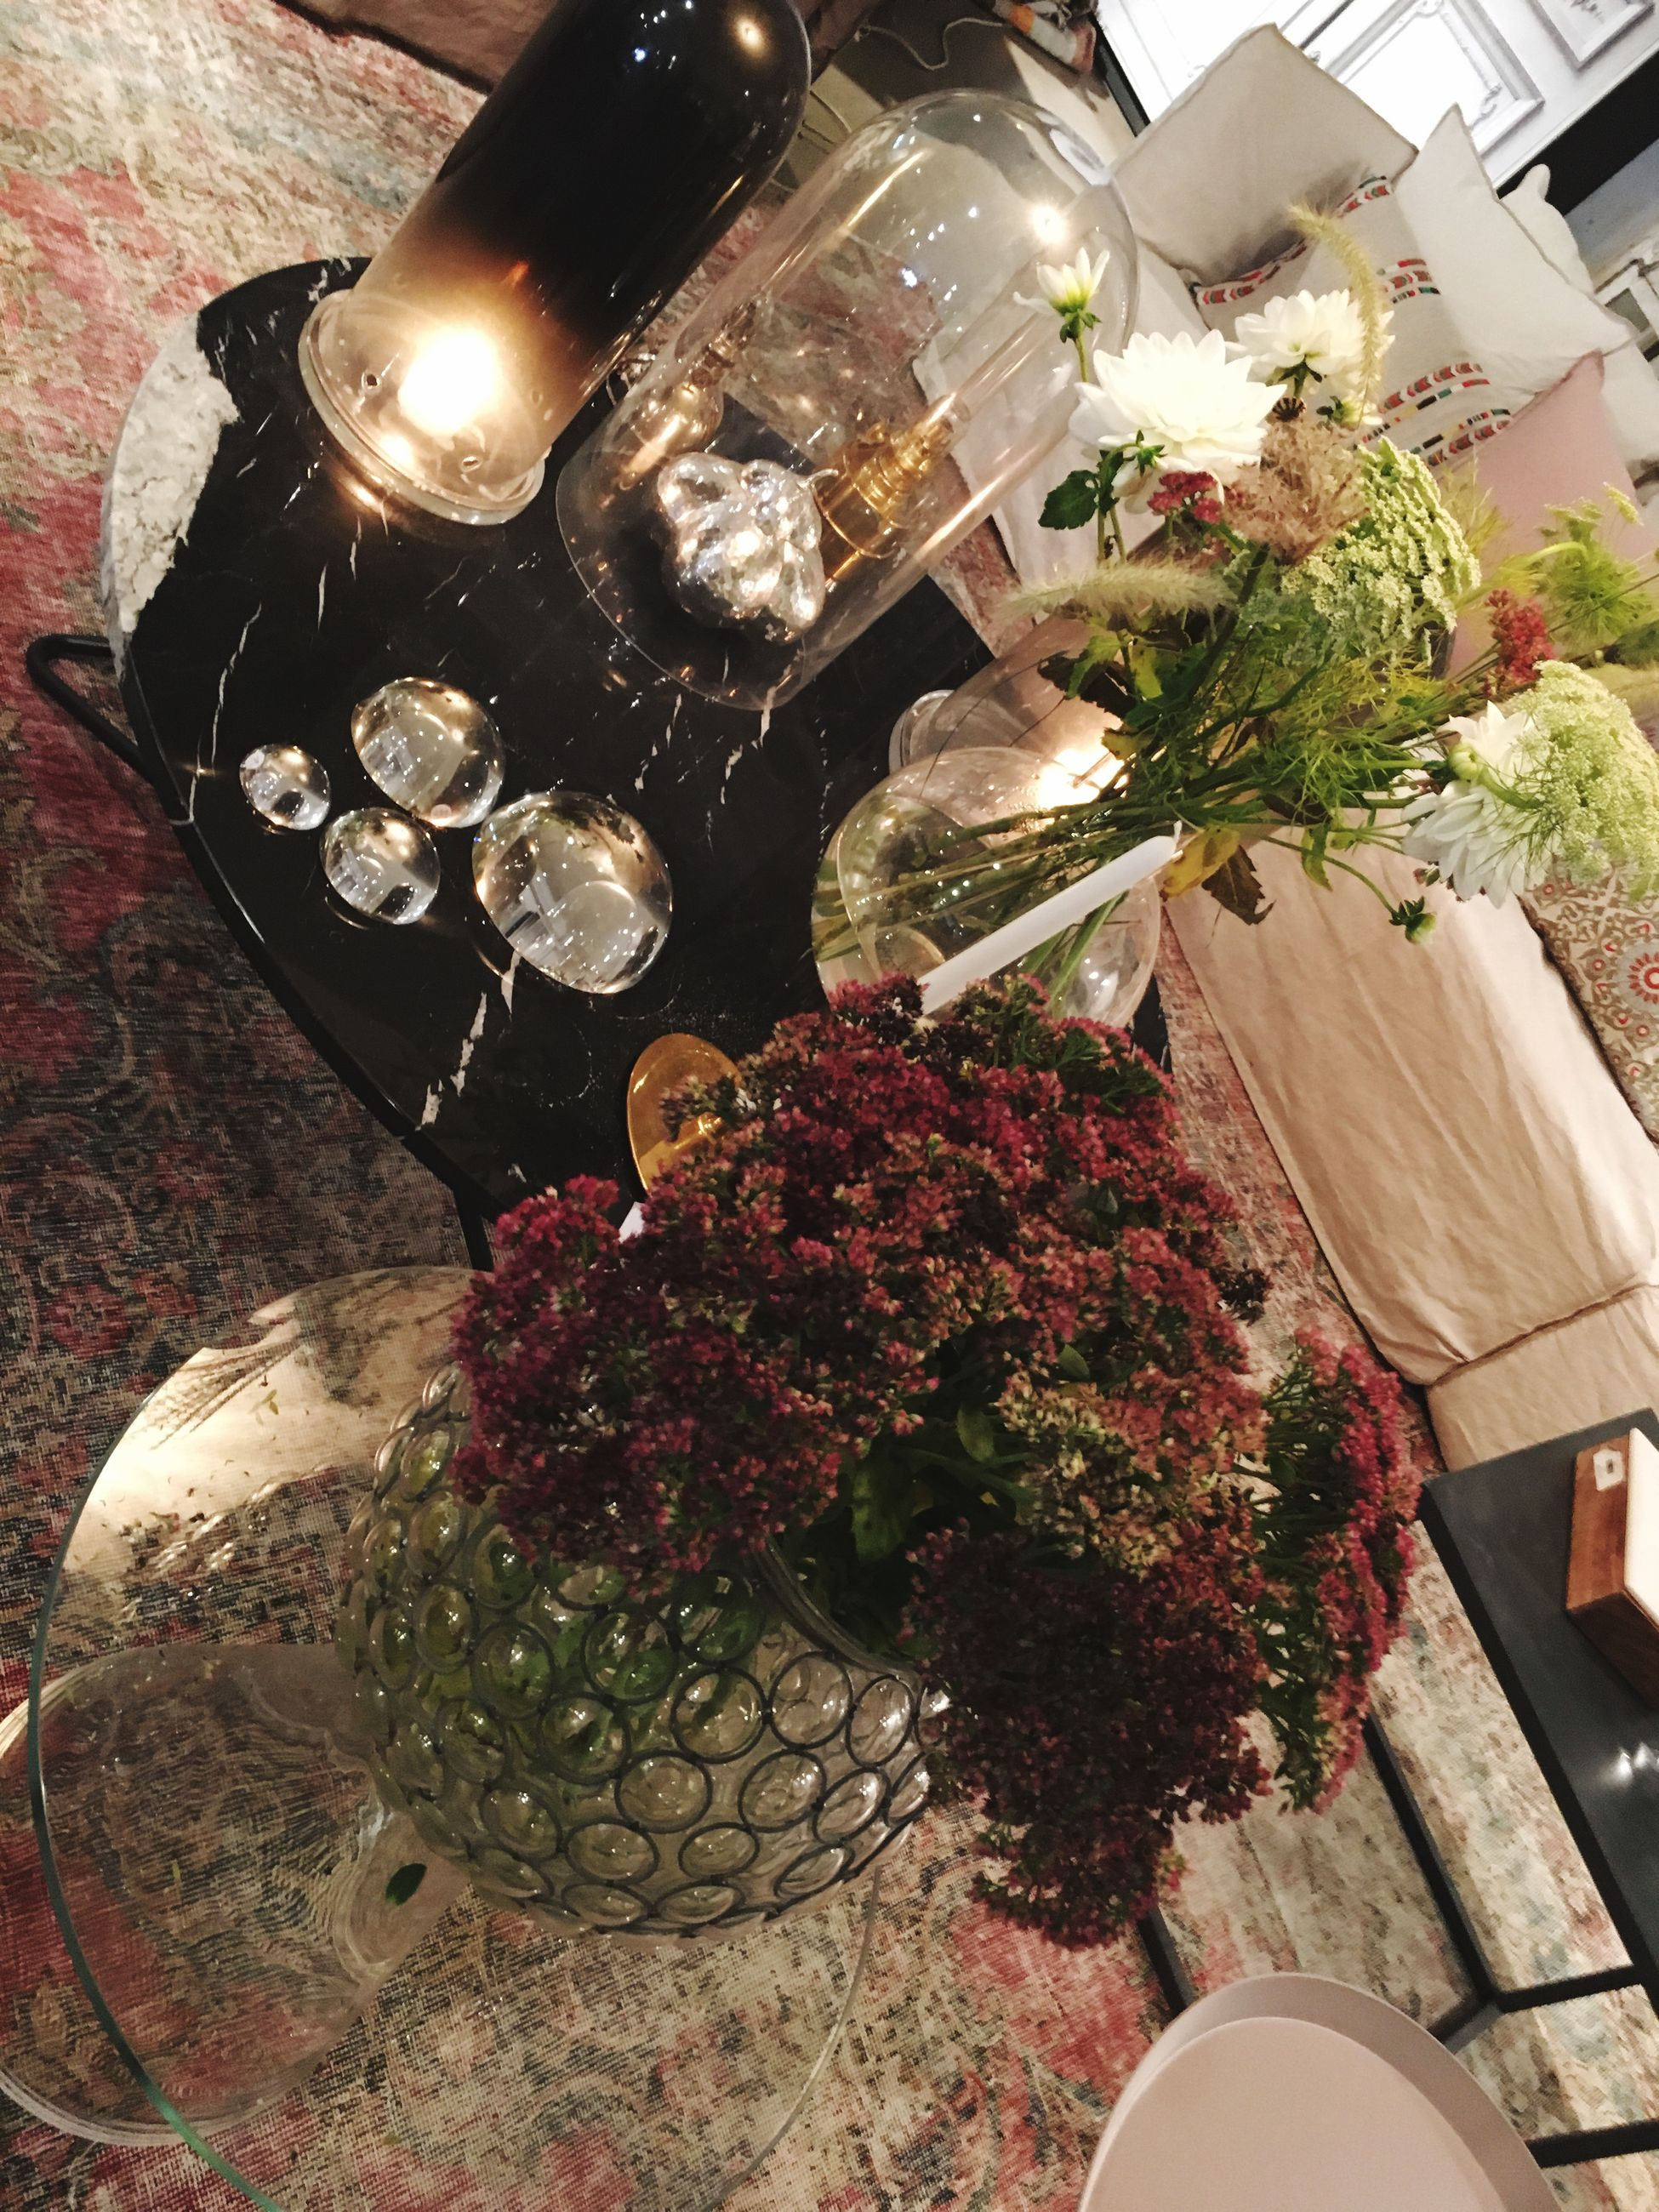 flower, high angle view, potted plant, table, indoors, freshness, decoration, plant, vase, illuminated, lighting equipment, growth, flower pot, no people, still life, christmas, night, fragility, front or back yard, chair